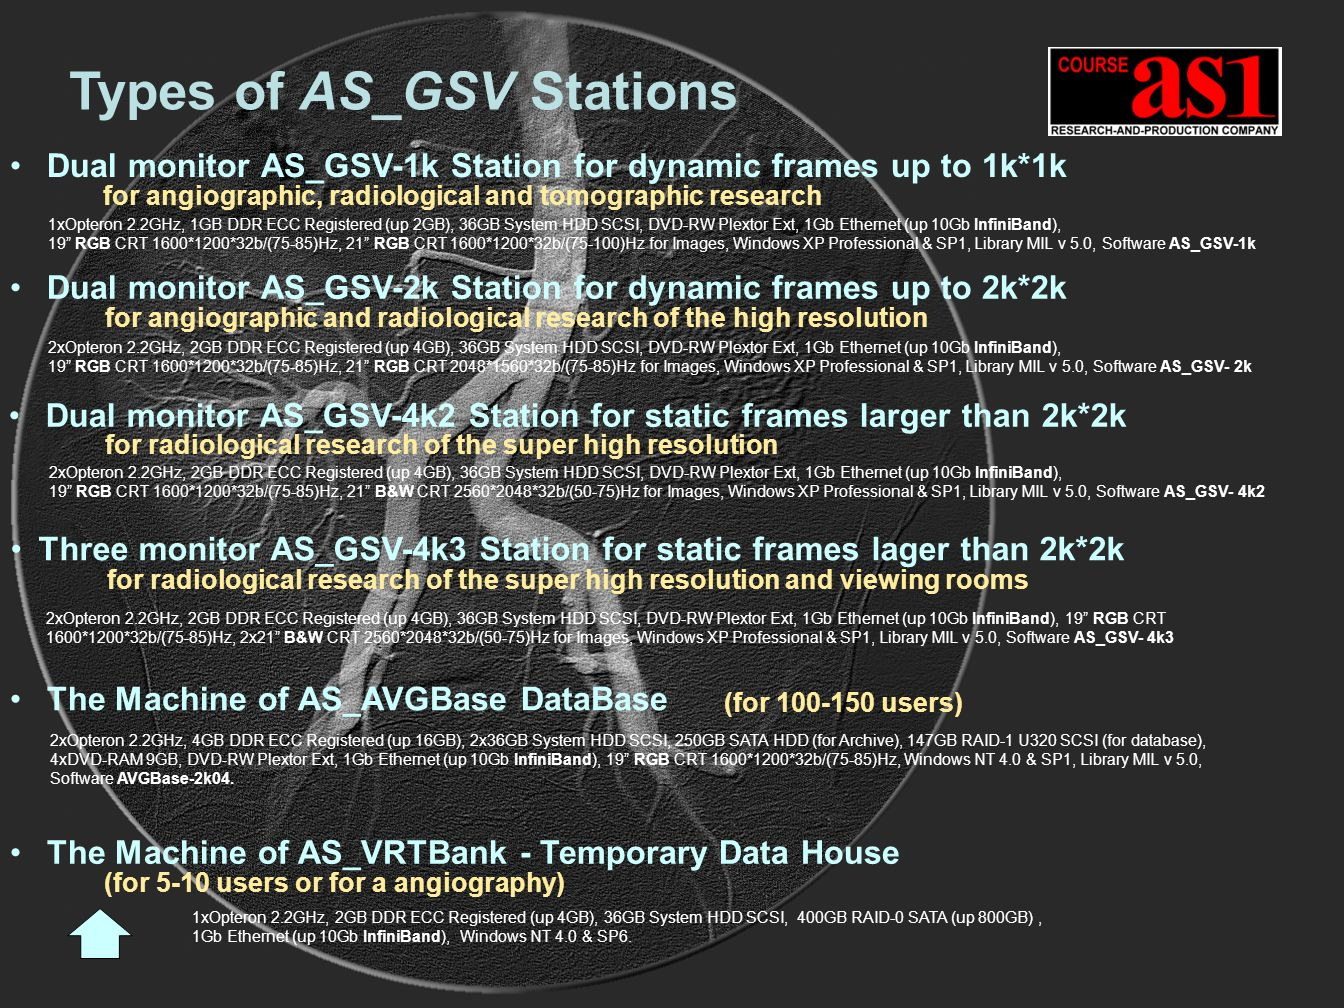 Types of AS_GSV Stations Dual monitor AS_GSV-1k Station for dynamic frames up to 1k*1k for angiographic, radiological and tomographic research Dual monitor AS_GSV-2k Station for dynamic frames up to 2k*2k for angiographic and radiological research of the high resolution Dual monitor AS_GSV-4k2 Station for static frames larger than 2k*2k for radiological research of the super high resolution Three monitor AS_GSV-4k3 Station for static frames lager than 2k*2k for radiological research of the super high resolution and viewing rooms The Machine of AS_AVGBase DataBase (for 100-150 users) The Machine of AS_VRTBank - Temporary Data House (for 5-10 users or for a angiography) 1xOpteron 2.2GHz, 1GB DDR ECC Registered (up 2GB), 36GB System HDD SCSI, DVD-RW Plextor Ext, 1Gb Ethernet (up 10Gb InfiniBand), 19 RGB CRT 1600*1200*32b/(75-85)Hz, 21 RGB CRT 1600*1200*32b/(75-100)Hz for Images, Windows XP Professional & SP1, Library MIL v 5.0, Software AS_GSV-1k 2xOpteron 2.2GHz, 2GB DDR ECC Registered (up 4GB), 36GB System HDD SCSI, DVD-RW Plextor Ext, 1Gb Ethernet (up 10Gb InfiniBand), 19 RGB CRT 1600*1200*32b/(75-85)Hz, 21 RGB CRT 2048*1560*32b/(75-85)Hz for Images, Windows XP Professional & SP1, Library MIL v 5.0, Software AS_GSV- 2k 2xOpteron 2.2GHz, 2GB DDR ECC Registered (up 4GB), 36GB System HDD SCSI, DVD-RW Plextor Ext, 1Gb Ethernet (up 10Gb InfiniBand), 19 RGB CRT 1600*1200*32b/(75-85)Hz, 21 B&W CRT 2560*2048*32b/(50-75)Hz for Images, Windows XP Professional & SP1, Library MIL v 5.0, Software AS_GSV- 4k2 2xOpteron 2.2GHz, 2GB DDR ECC Registered (up 4GB), 36GB System HDD SCSI, DVD-RW Plextor Ext, 1Gb Ethernet (up 10Gb InfiniBand), 19 RGB CRT 1600*1200*32b/(75-85)Hz, 2x21 B&W CRT 2560*2048*32b/(50-75)Hz for Images, Windows XP Professional & SP1, Library MIL v 5.0, Software AS_GSV- 4k3 1xOpteron 2.2GHz, 2GB DDR ECC Registered (up 4GB), 36GB System HDD SCSI, 400GB RAID-0 SATA (up 800GB), 1Gb Ethernet (up 10Gb InfiniBand), Windows NT 4.0 & SP6.